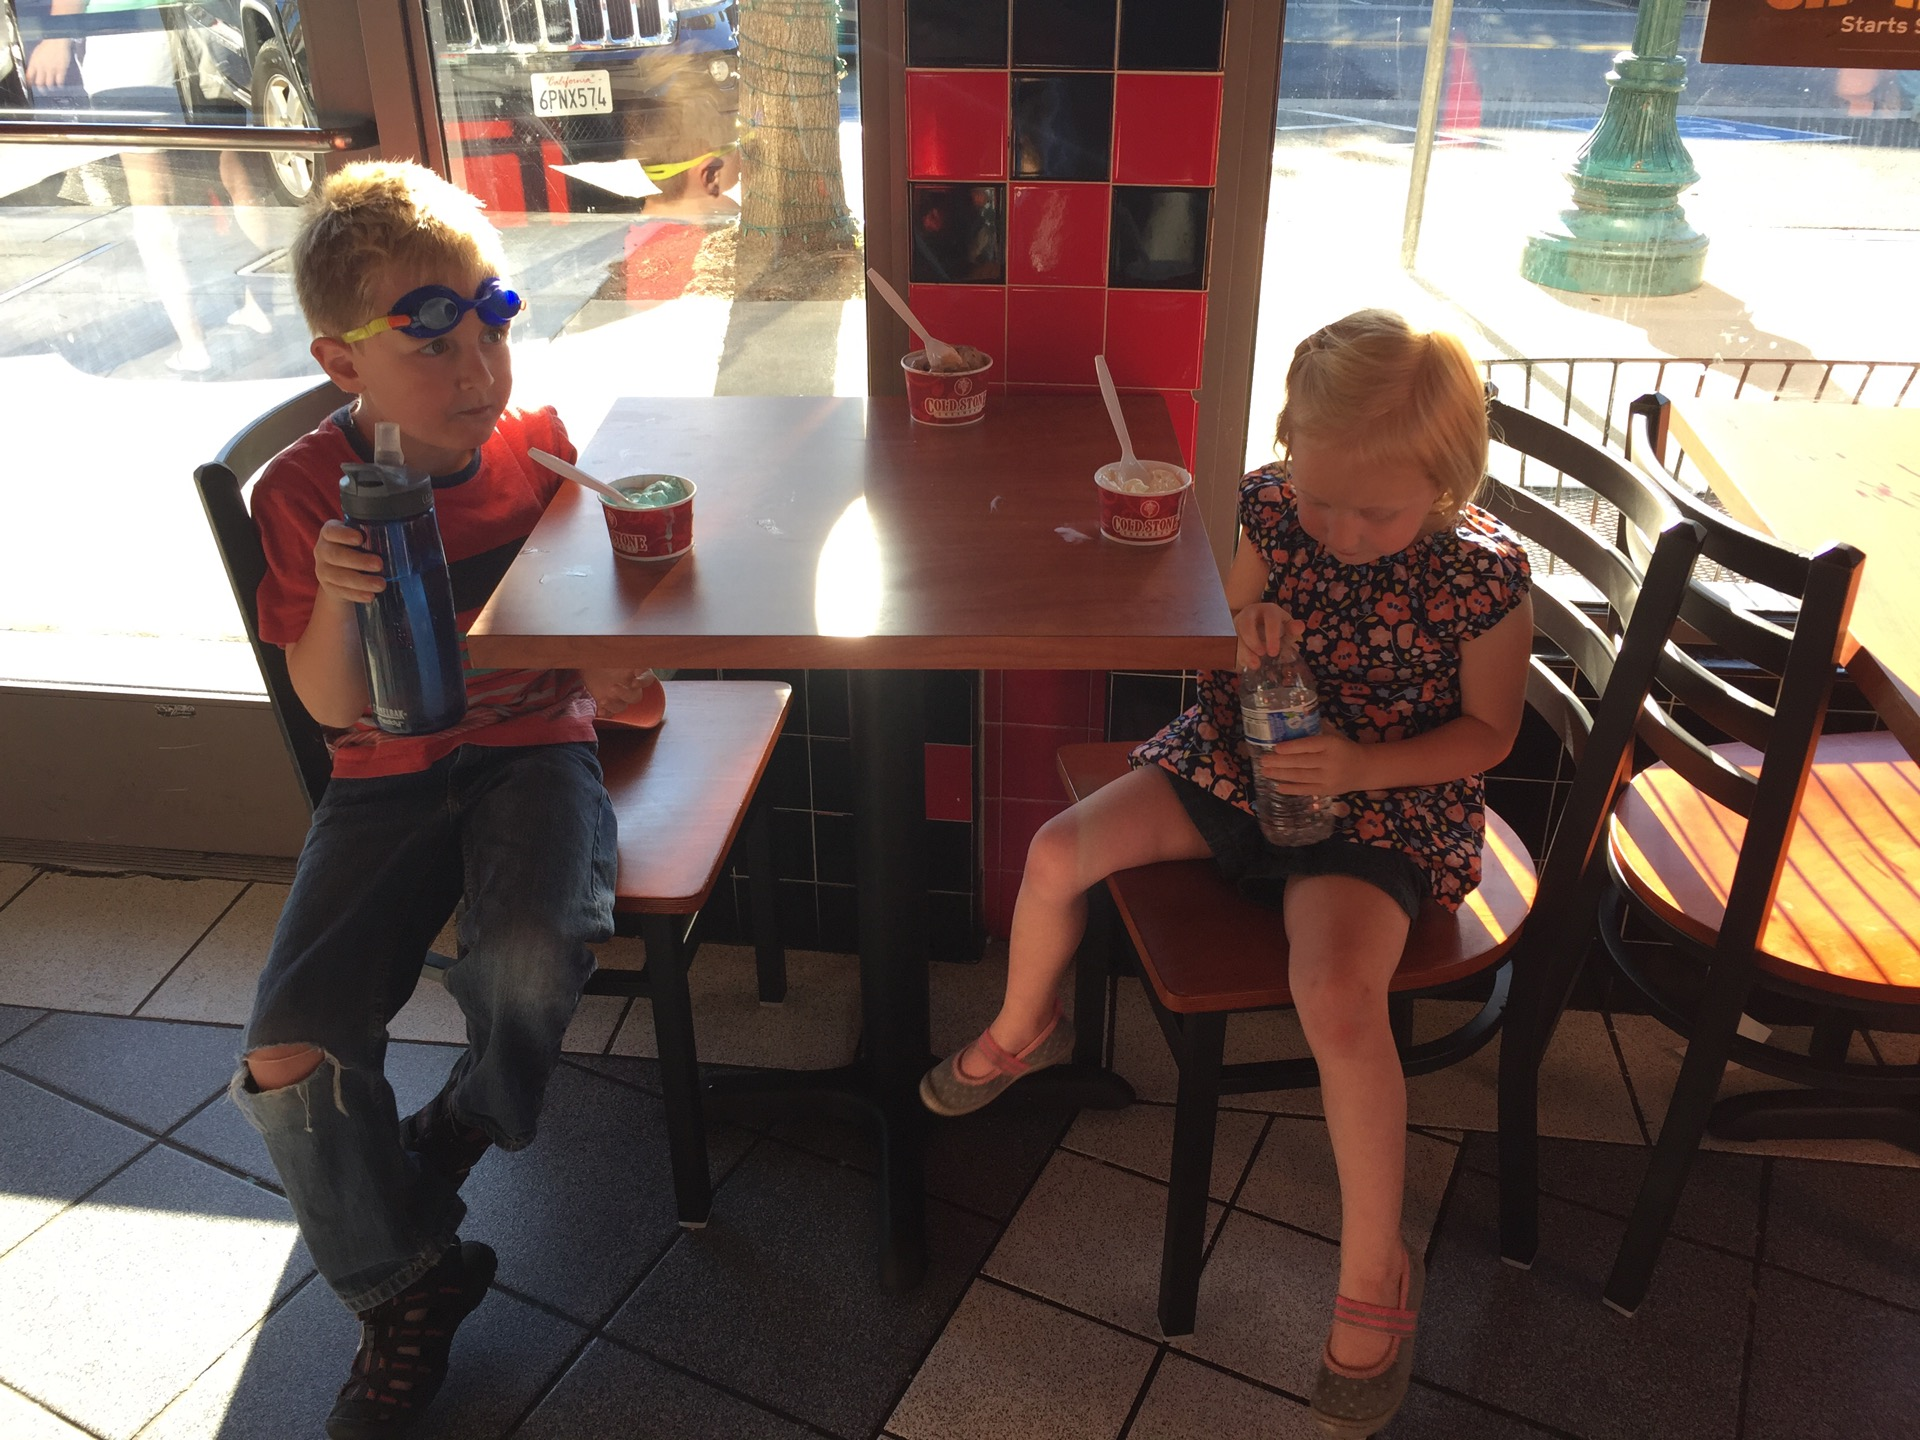 Checked in at Cold Stone Creamery